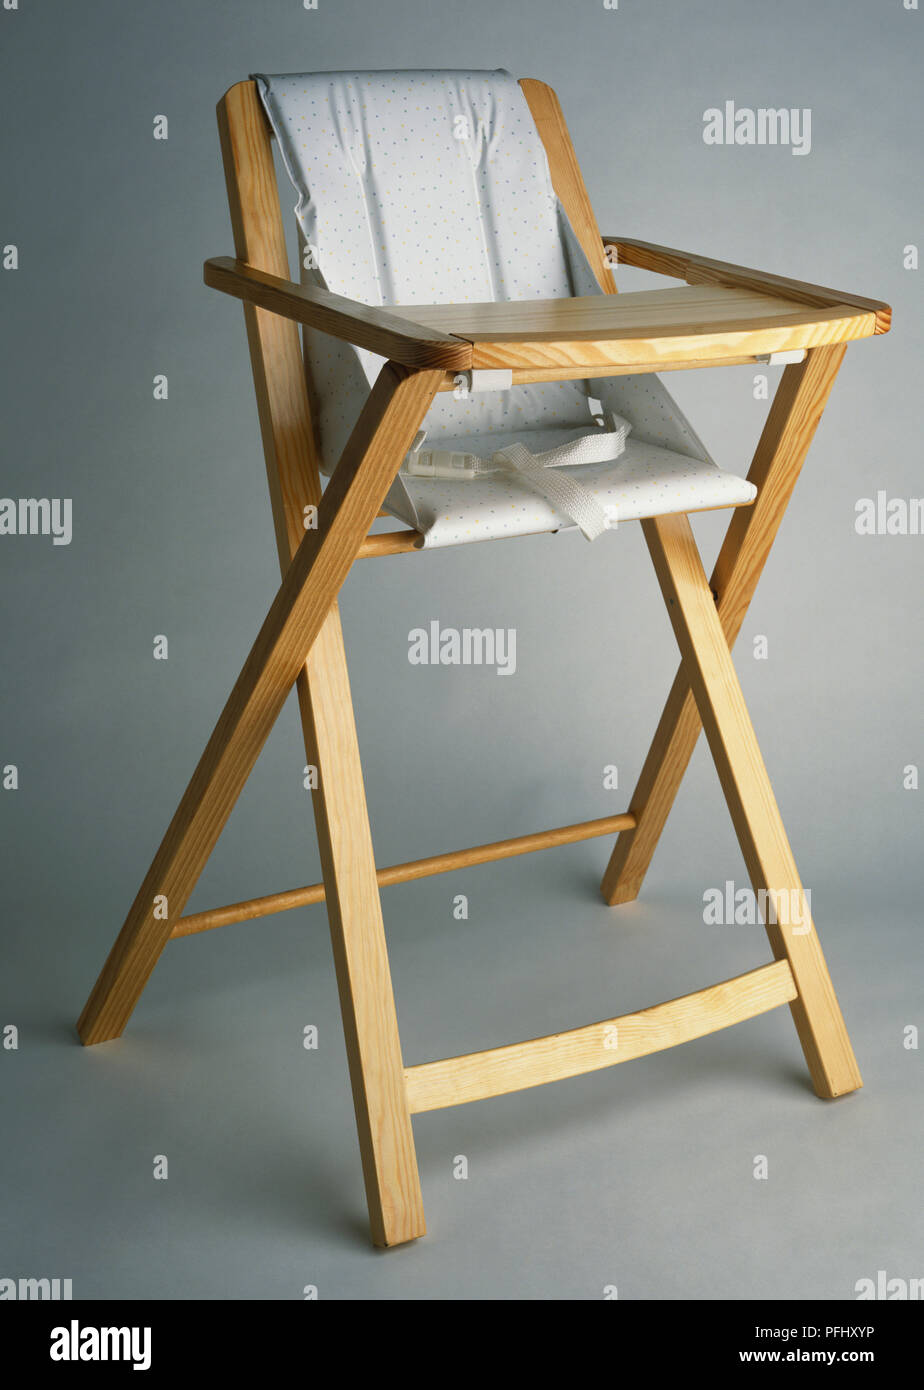 Pleasing Babys Fold Out High Chair With A Wooden Frame And White Gmtry Best Dining Table And Chair Ideas Images Gmtryco